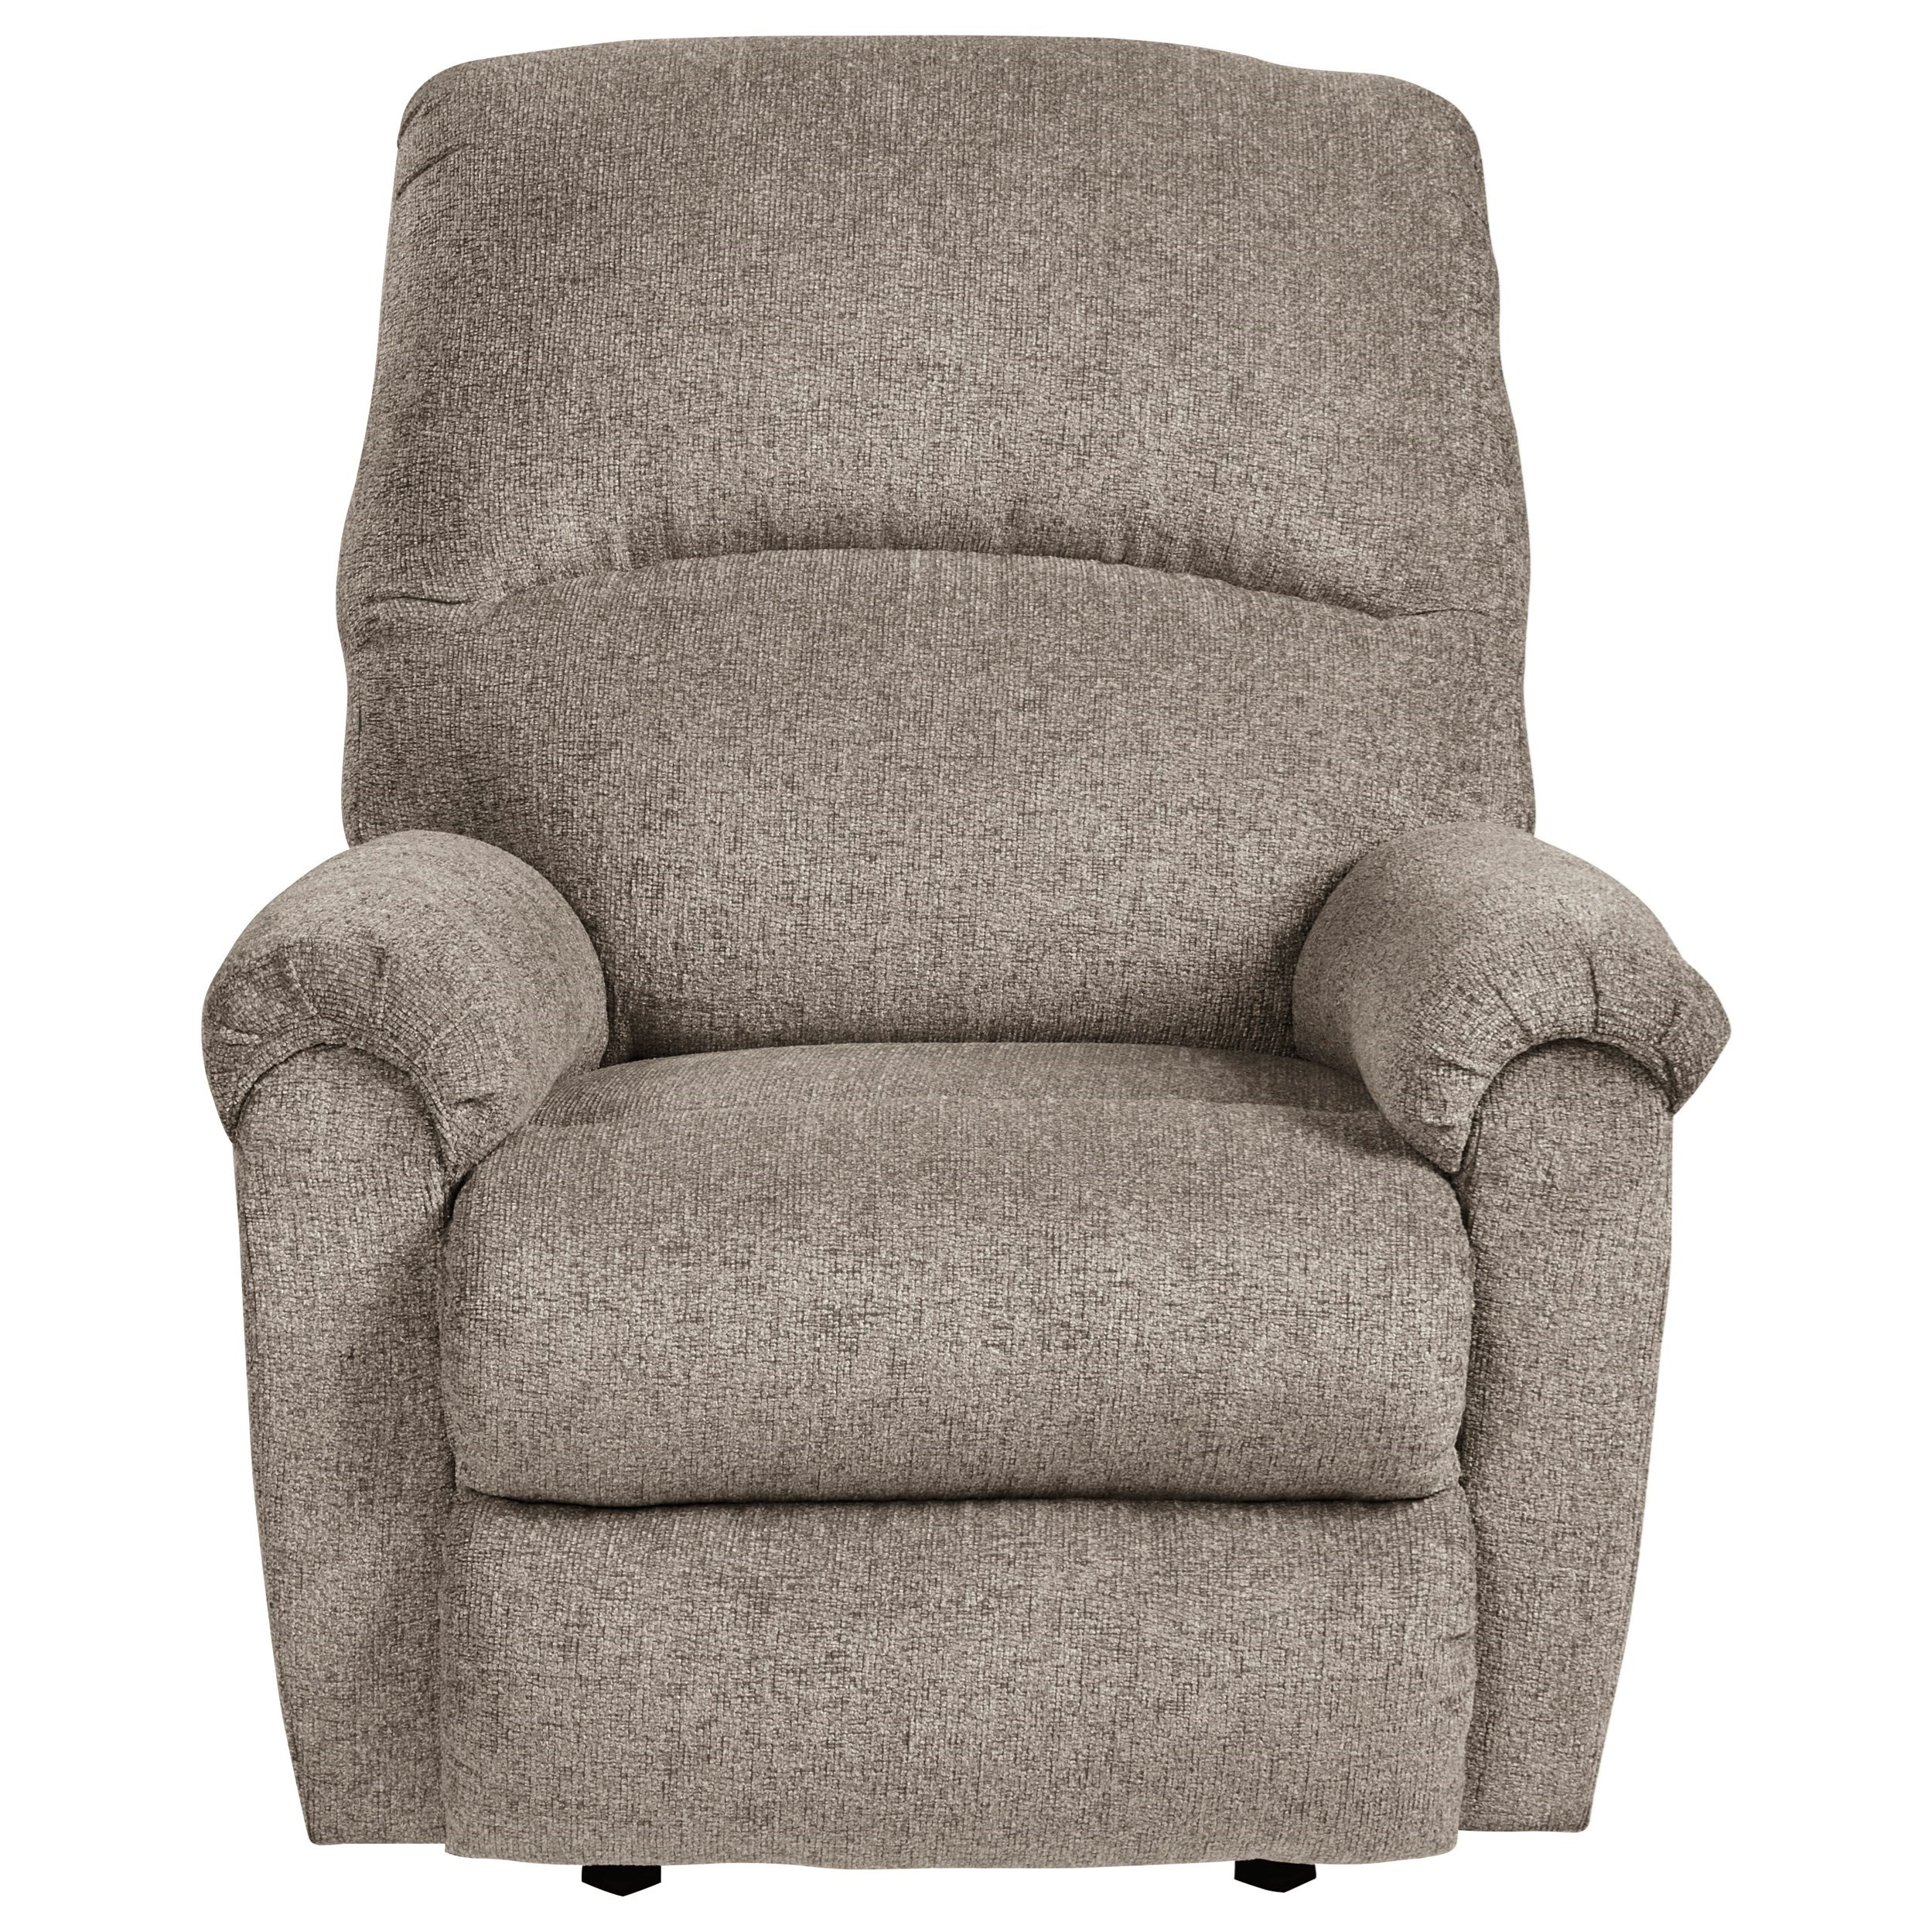 Breck Platinum Rocker Recliner by Signature at Walker's Furniture